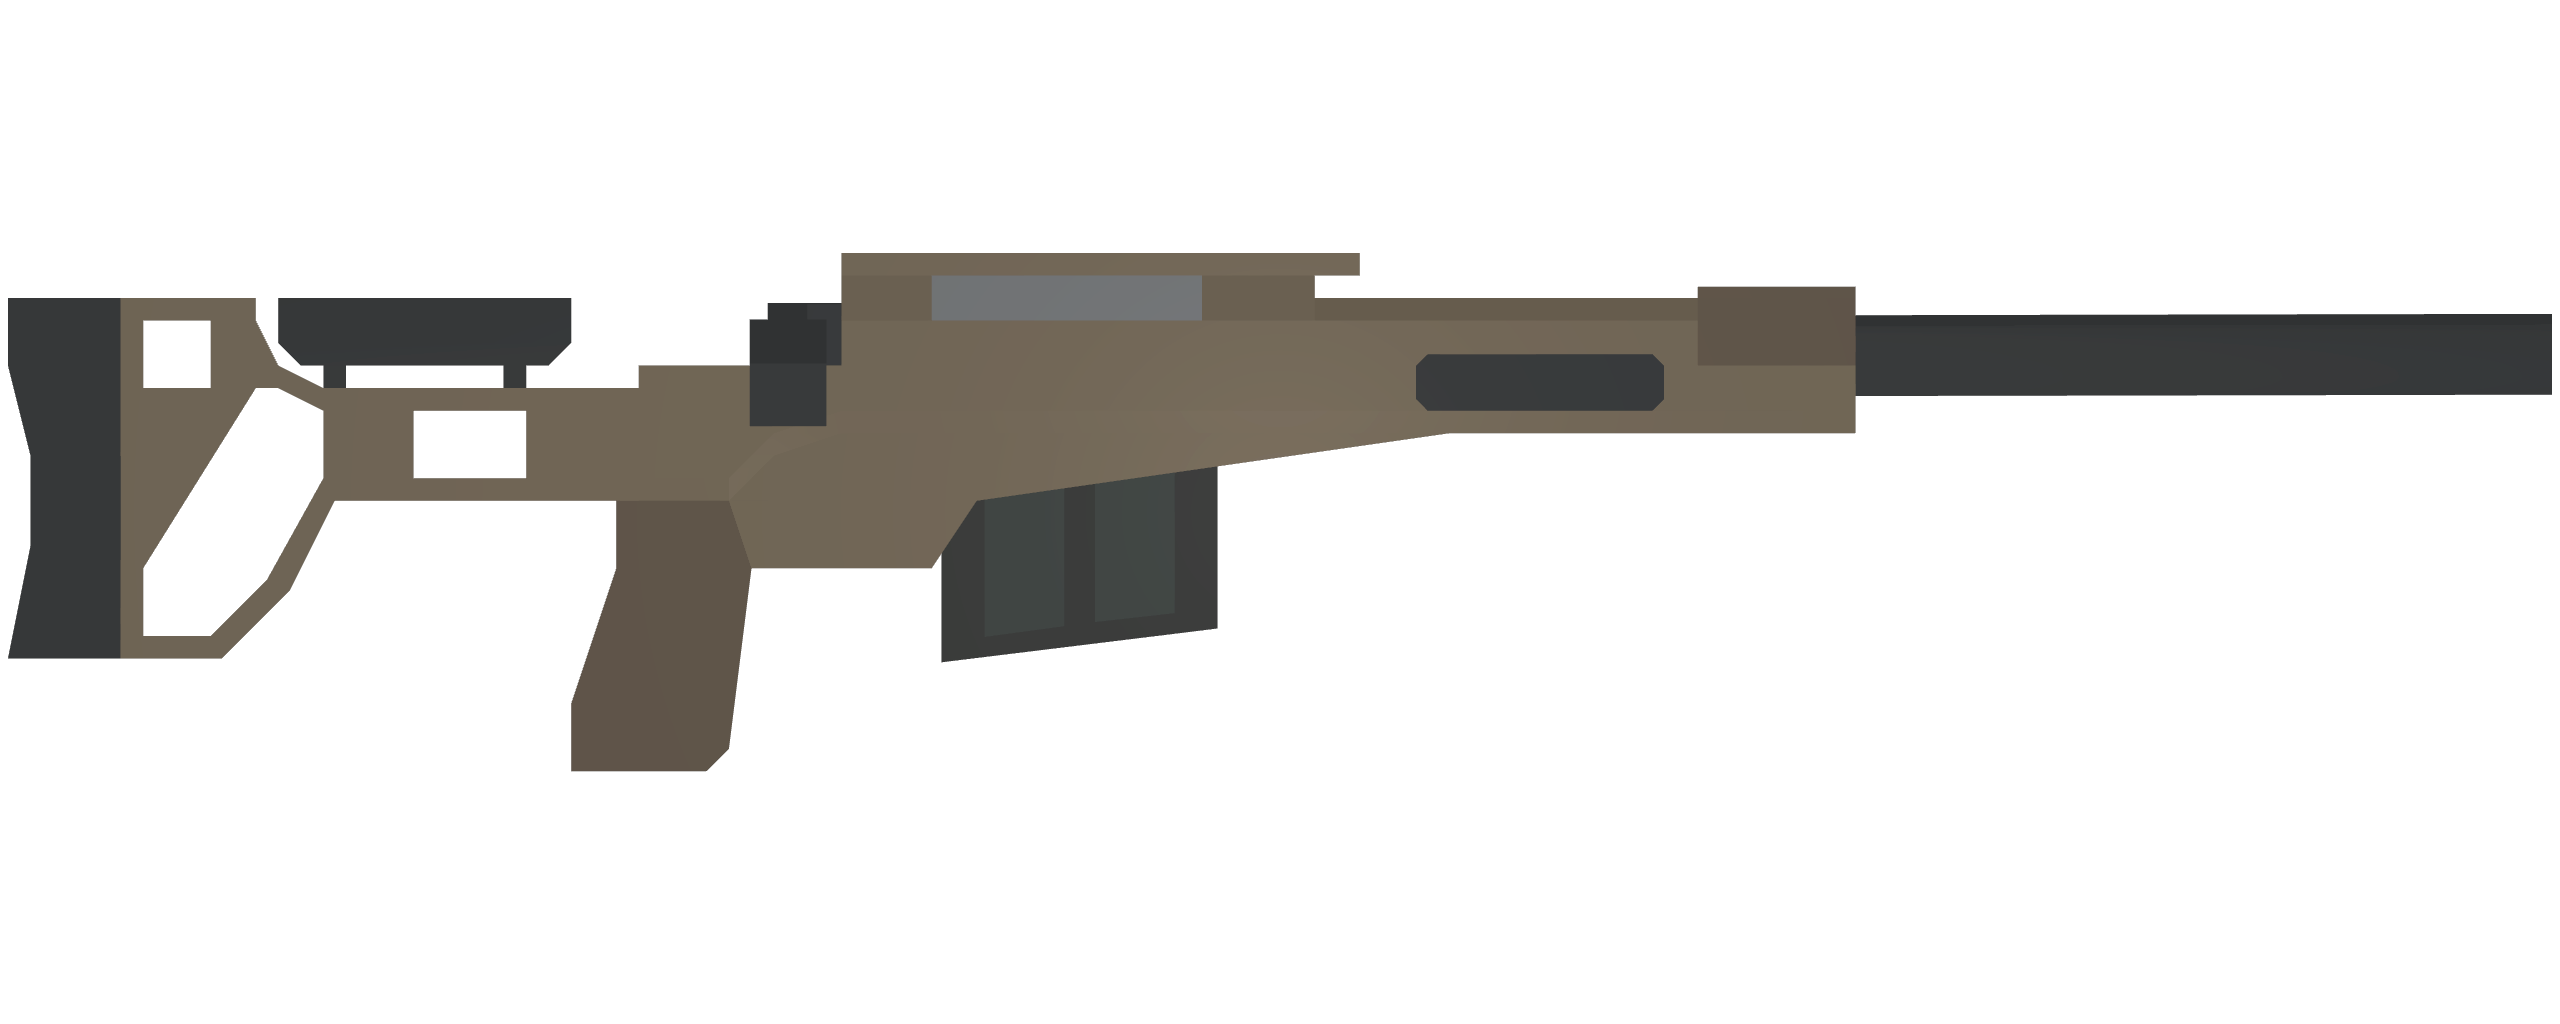 Unturned Uncreated Warfare Mods & All ID List + Attachments - USA Weapons - DDF5427